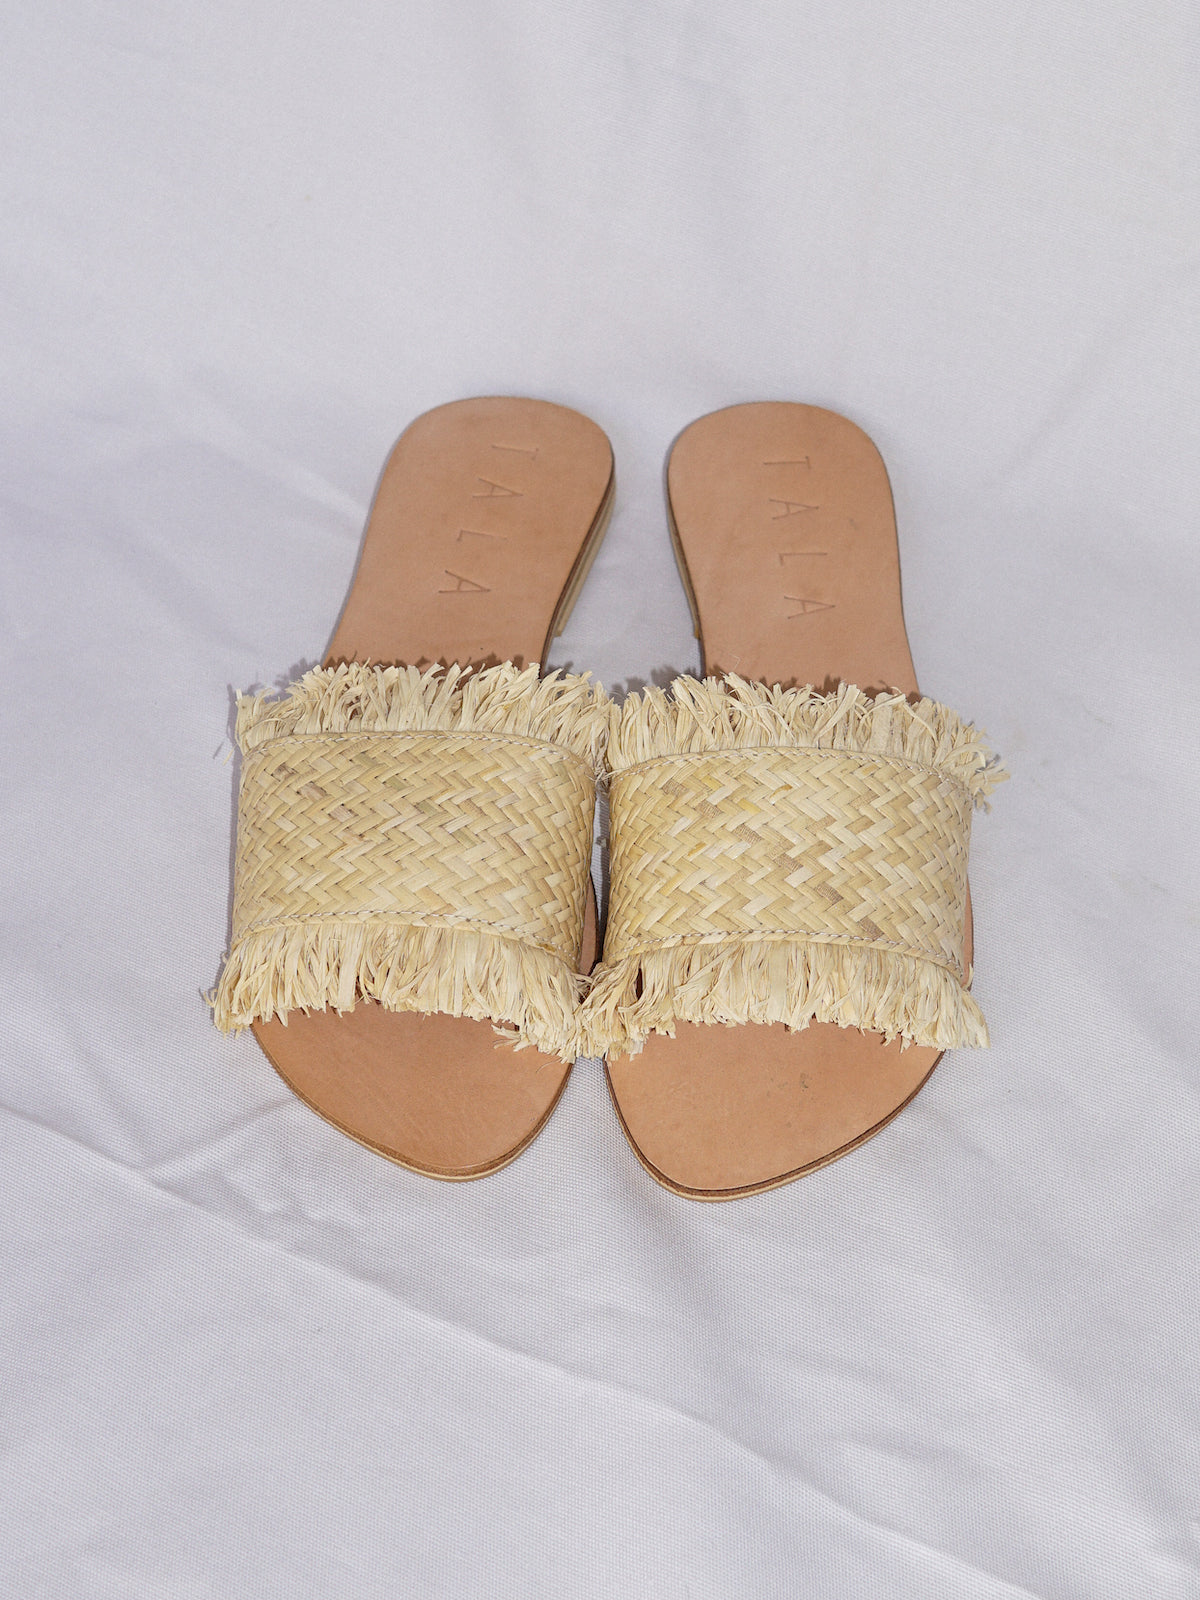 INNANA SANDALS - VANILLA